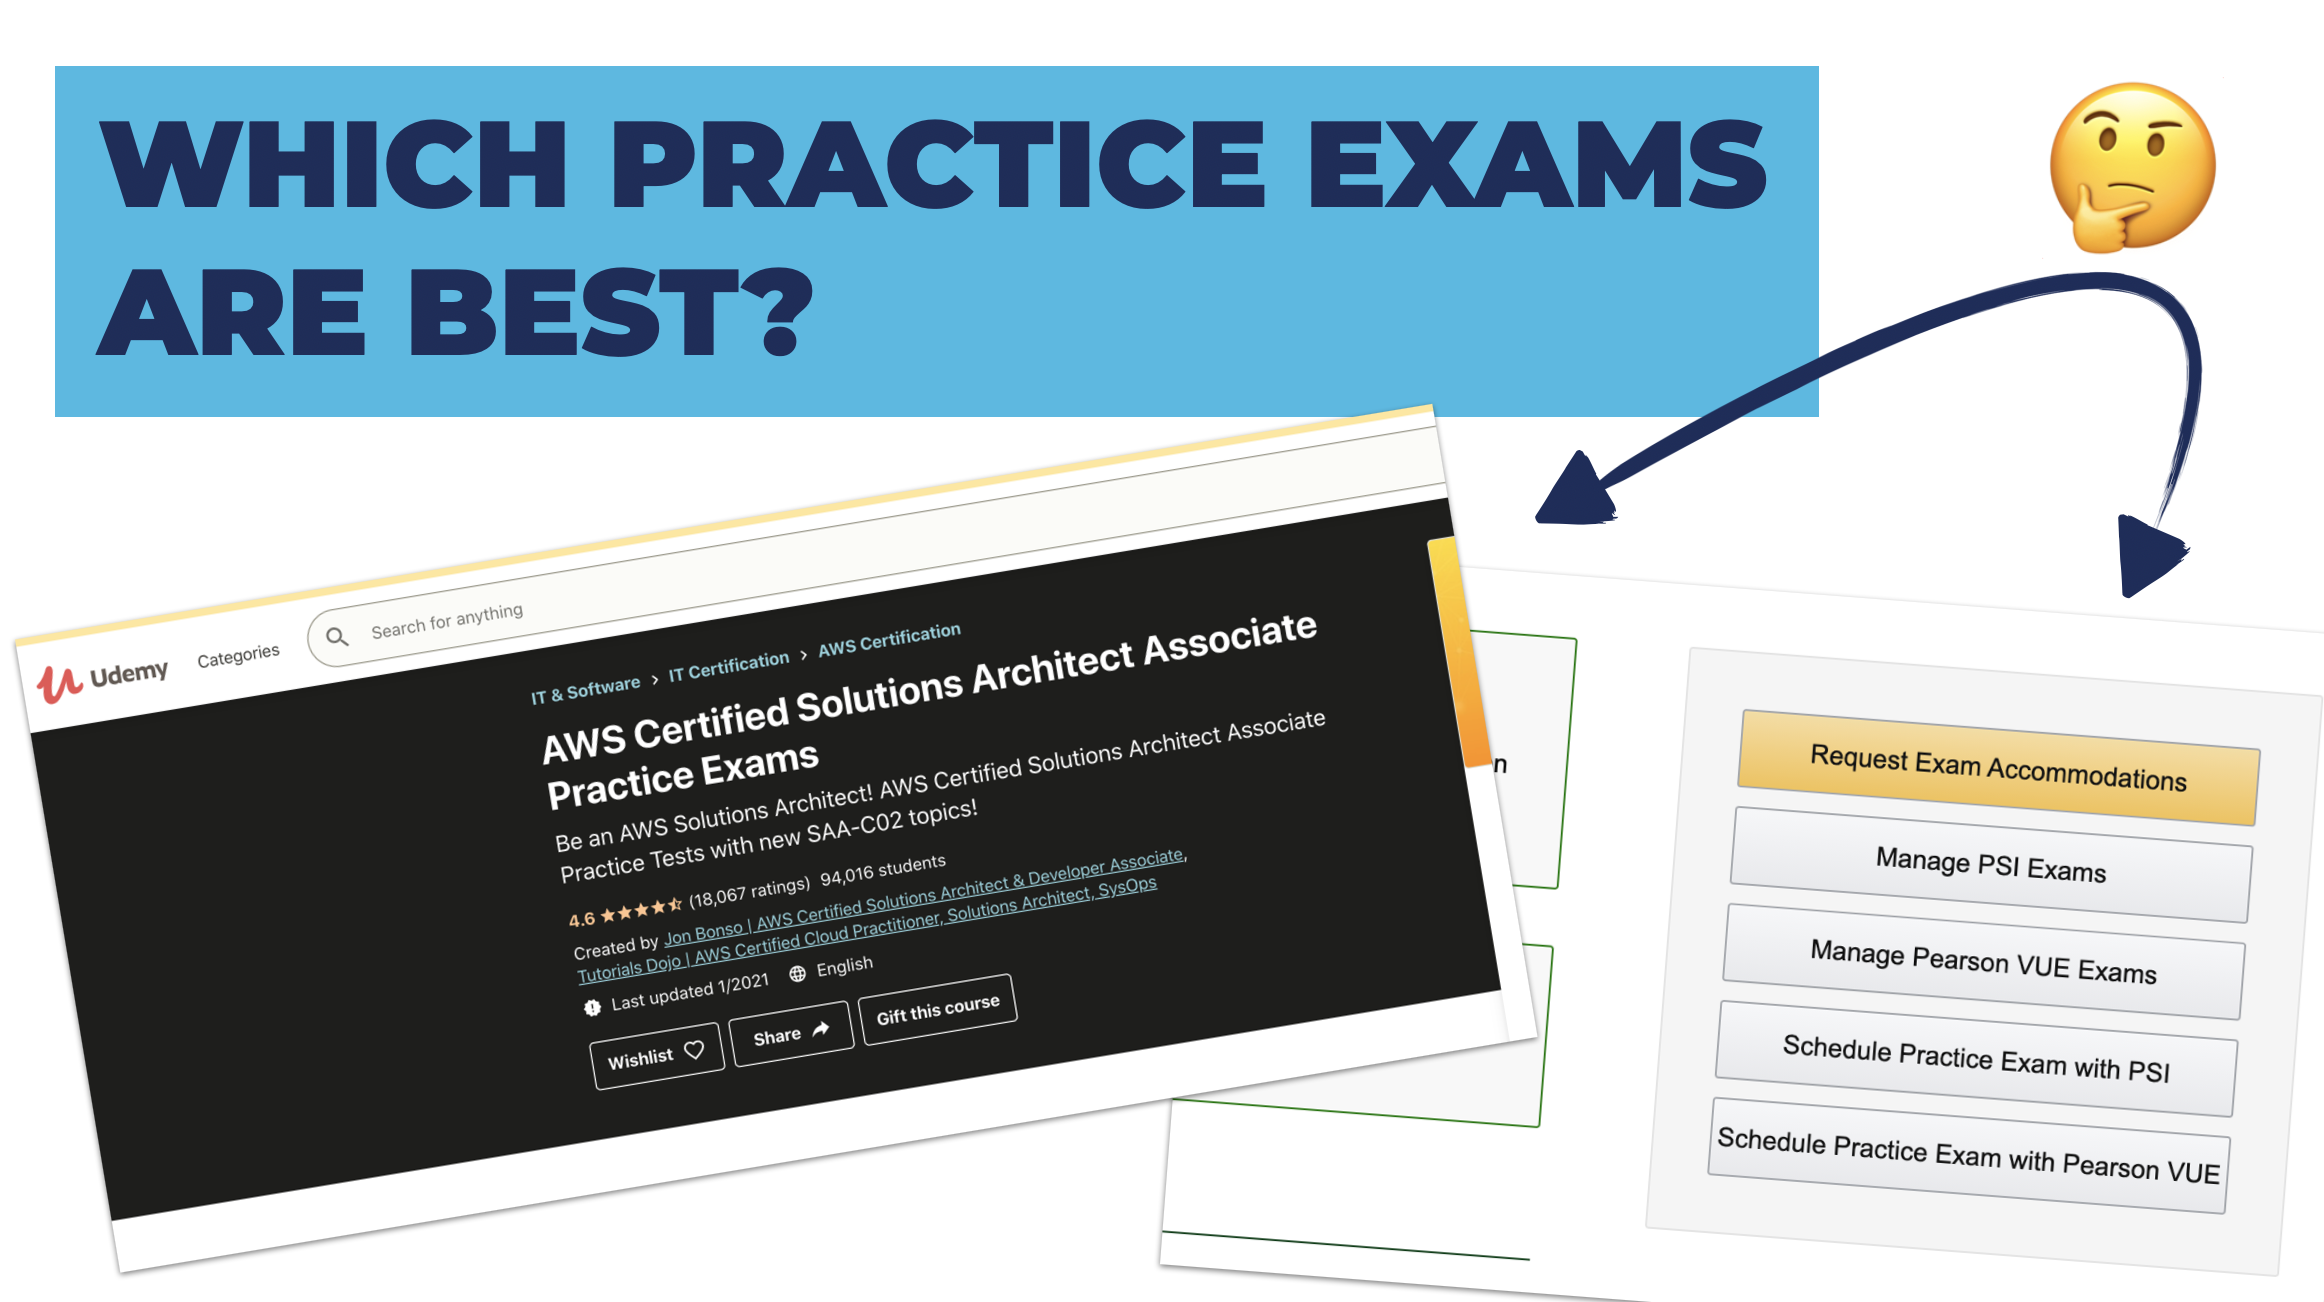 Which Practice Exams Are Best?